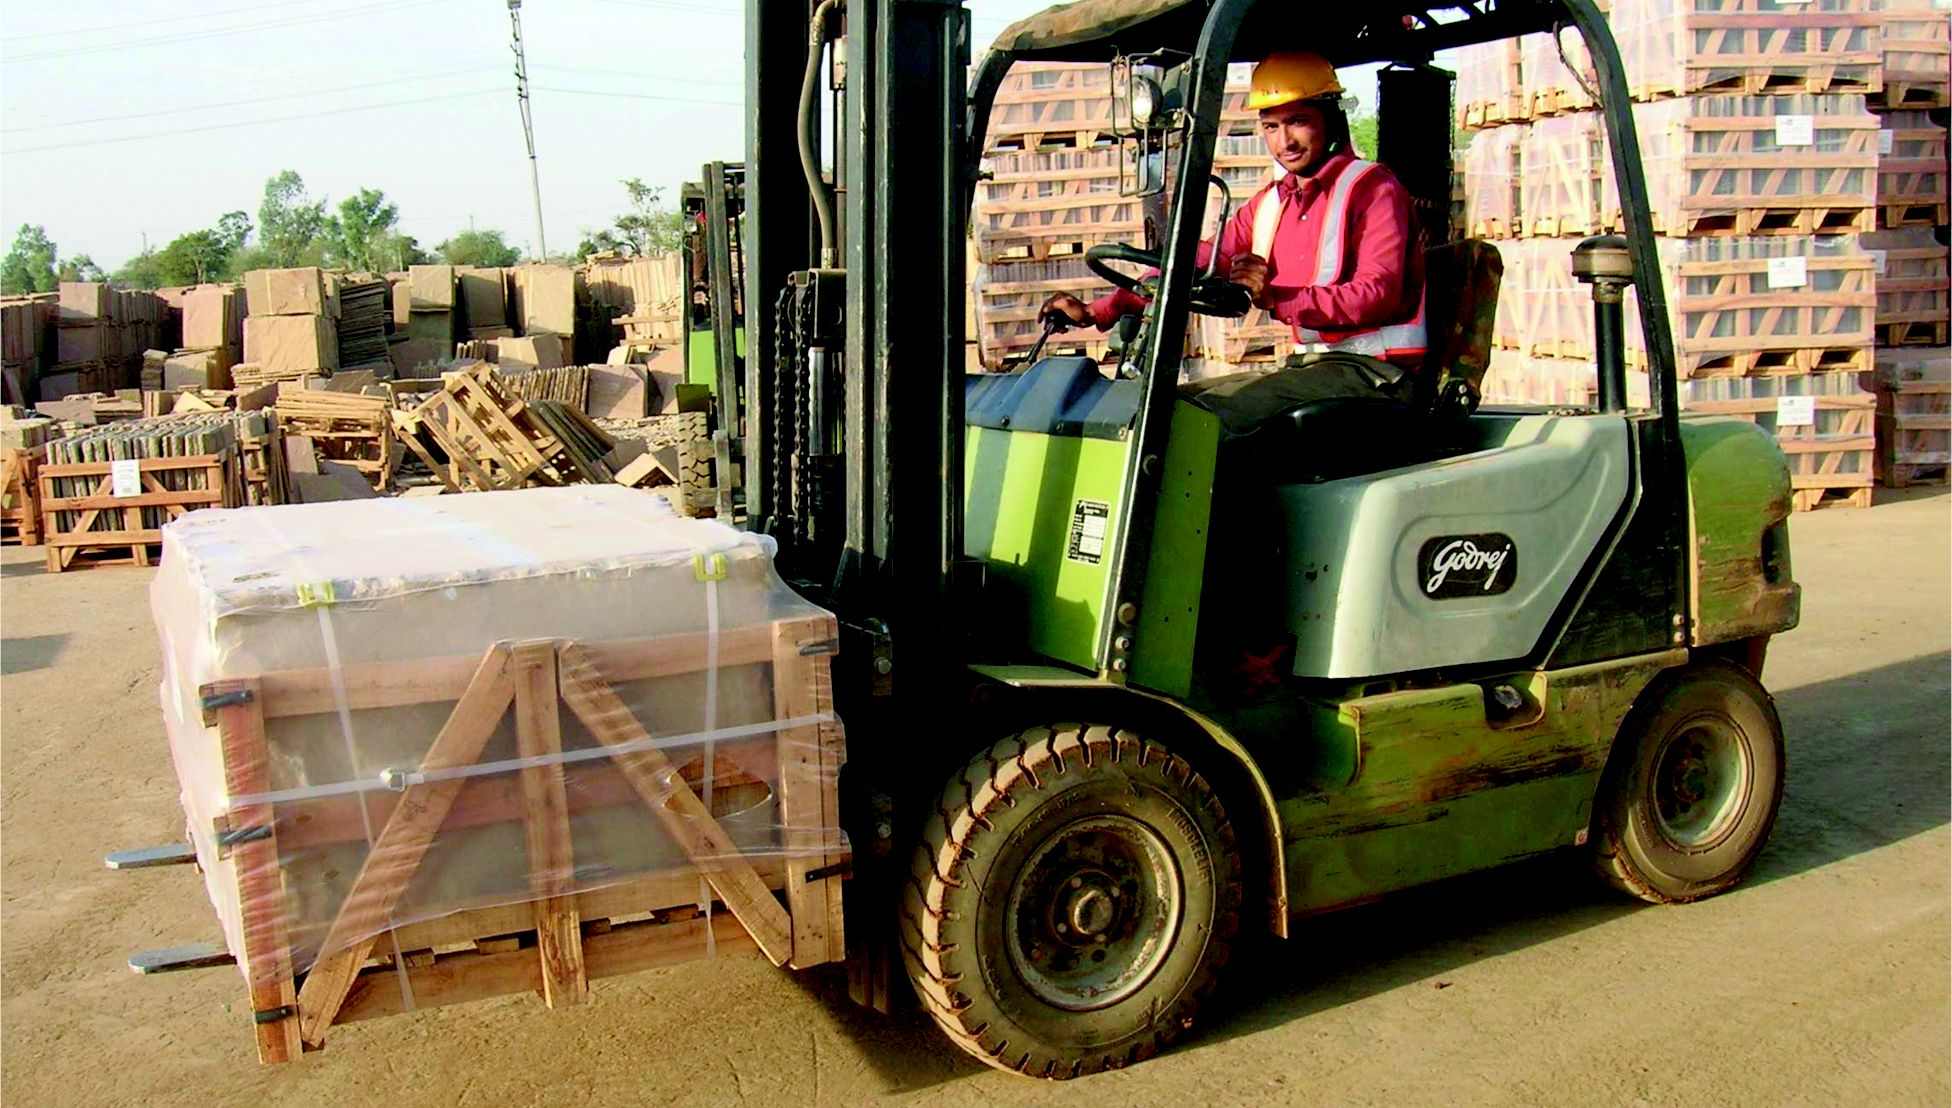 Natural stone paving slabs loaded on a forklift truck